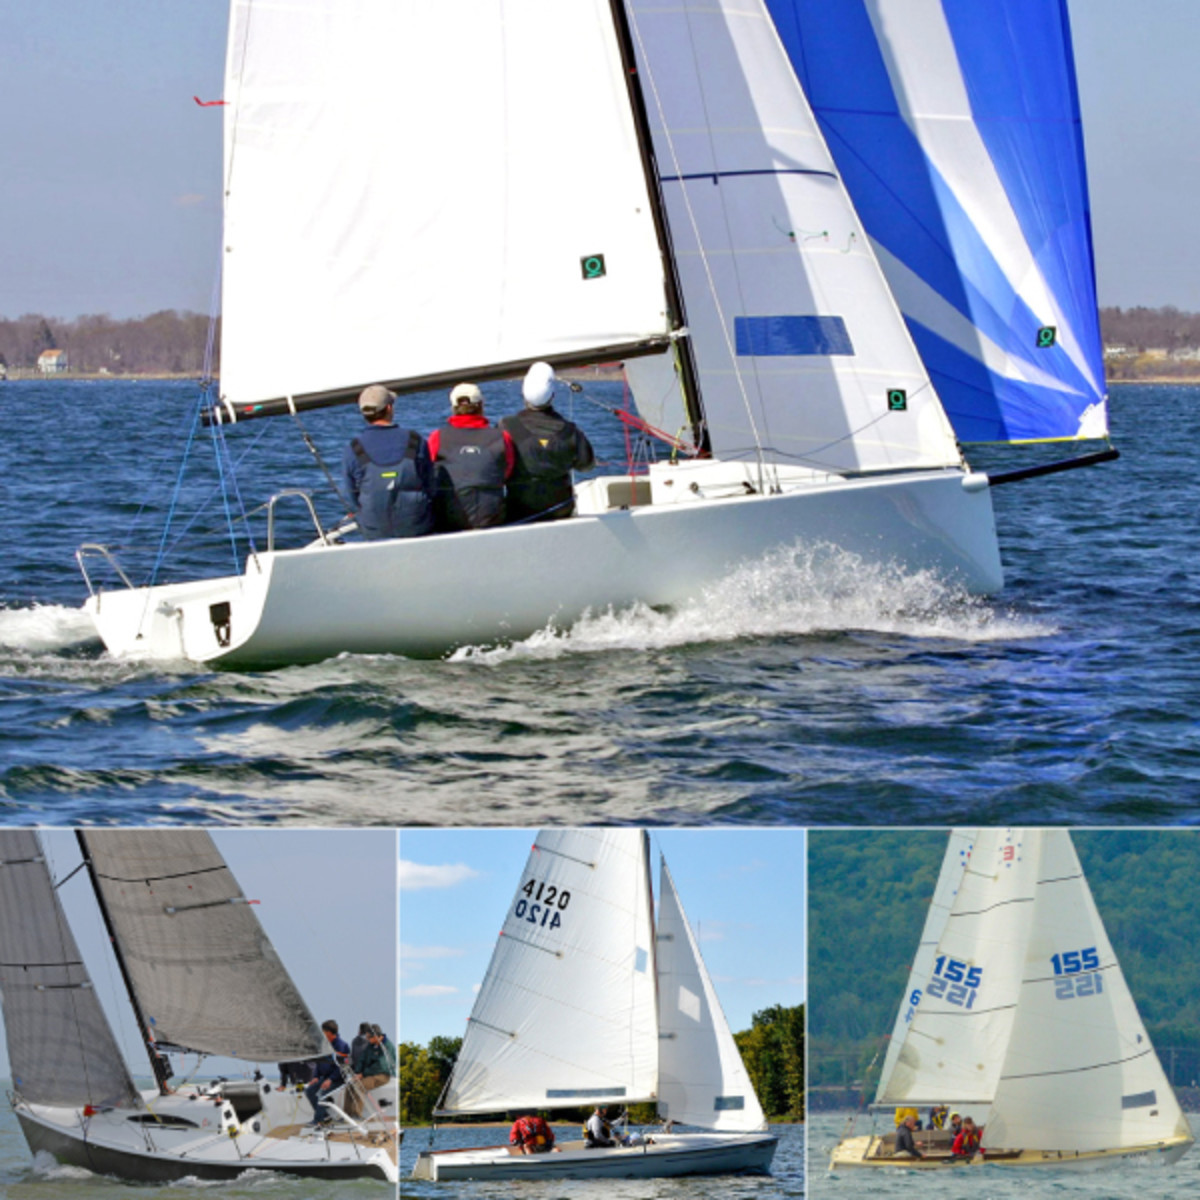 Competitive sailing is only part of what these great little designs have to offer: they are also perfect for just taking a spin on a sunny day: (clockwise from top) the J/70, Ensign, Flying Scot and Archambault 27